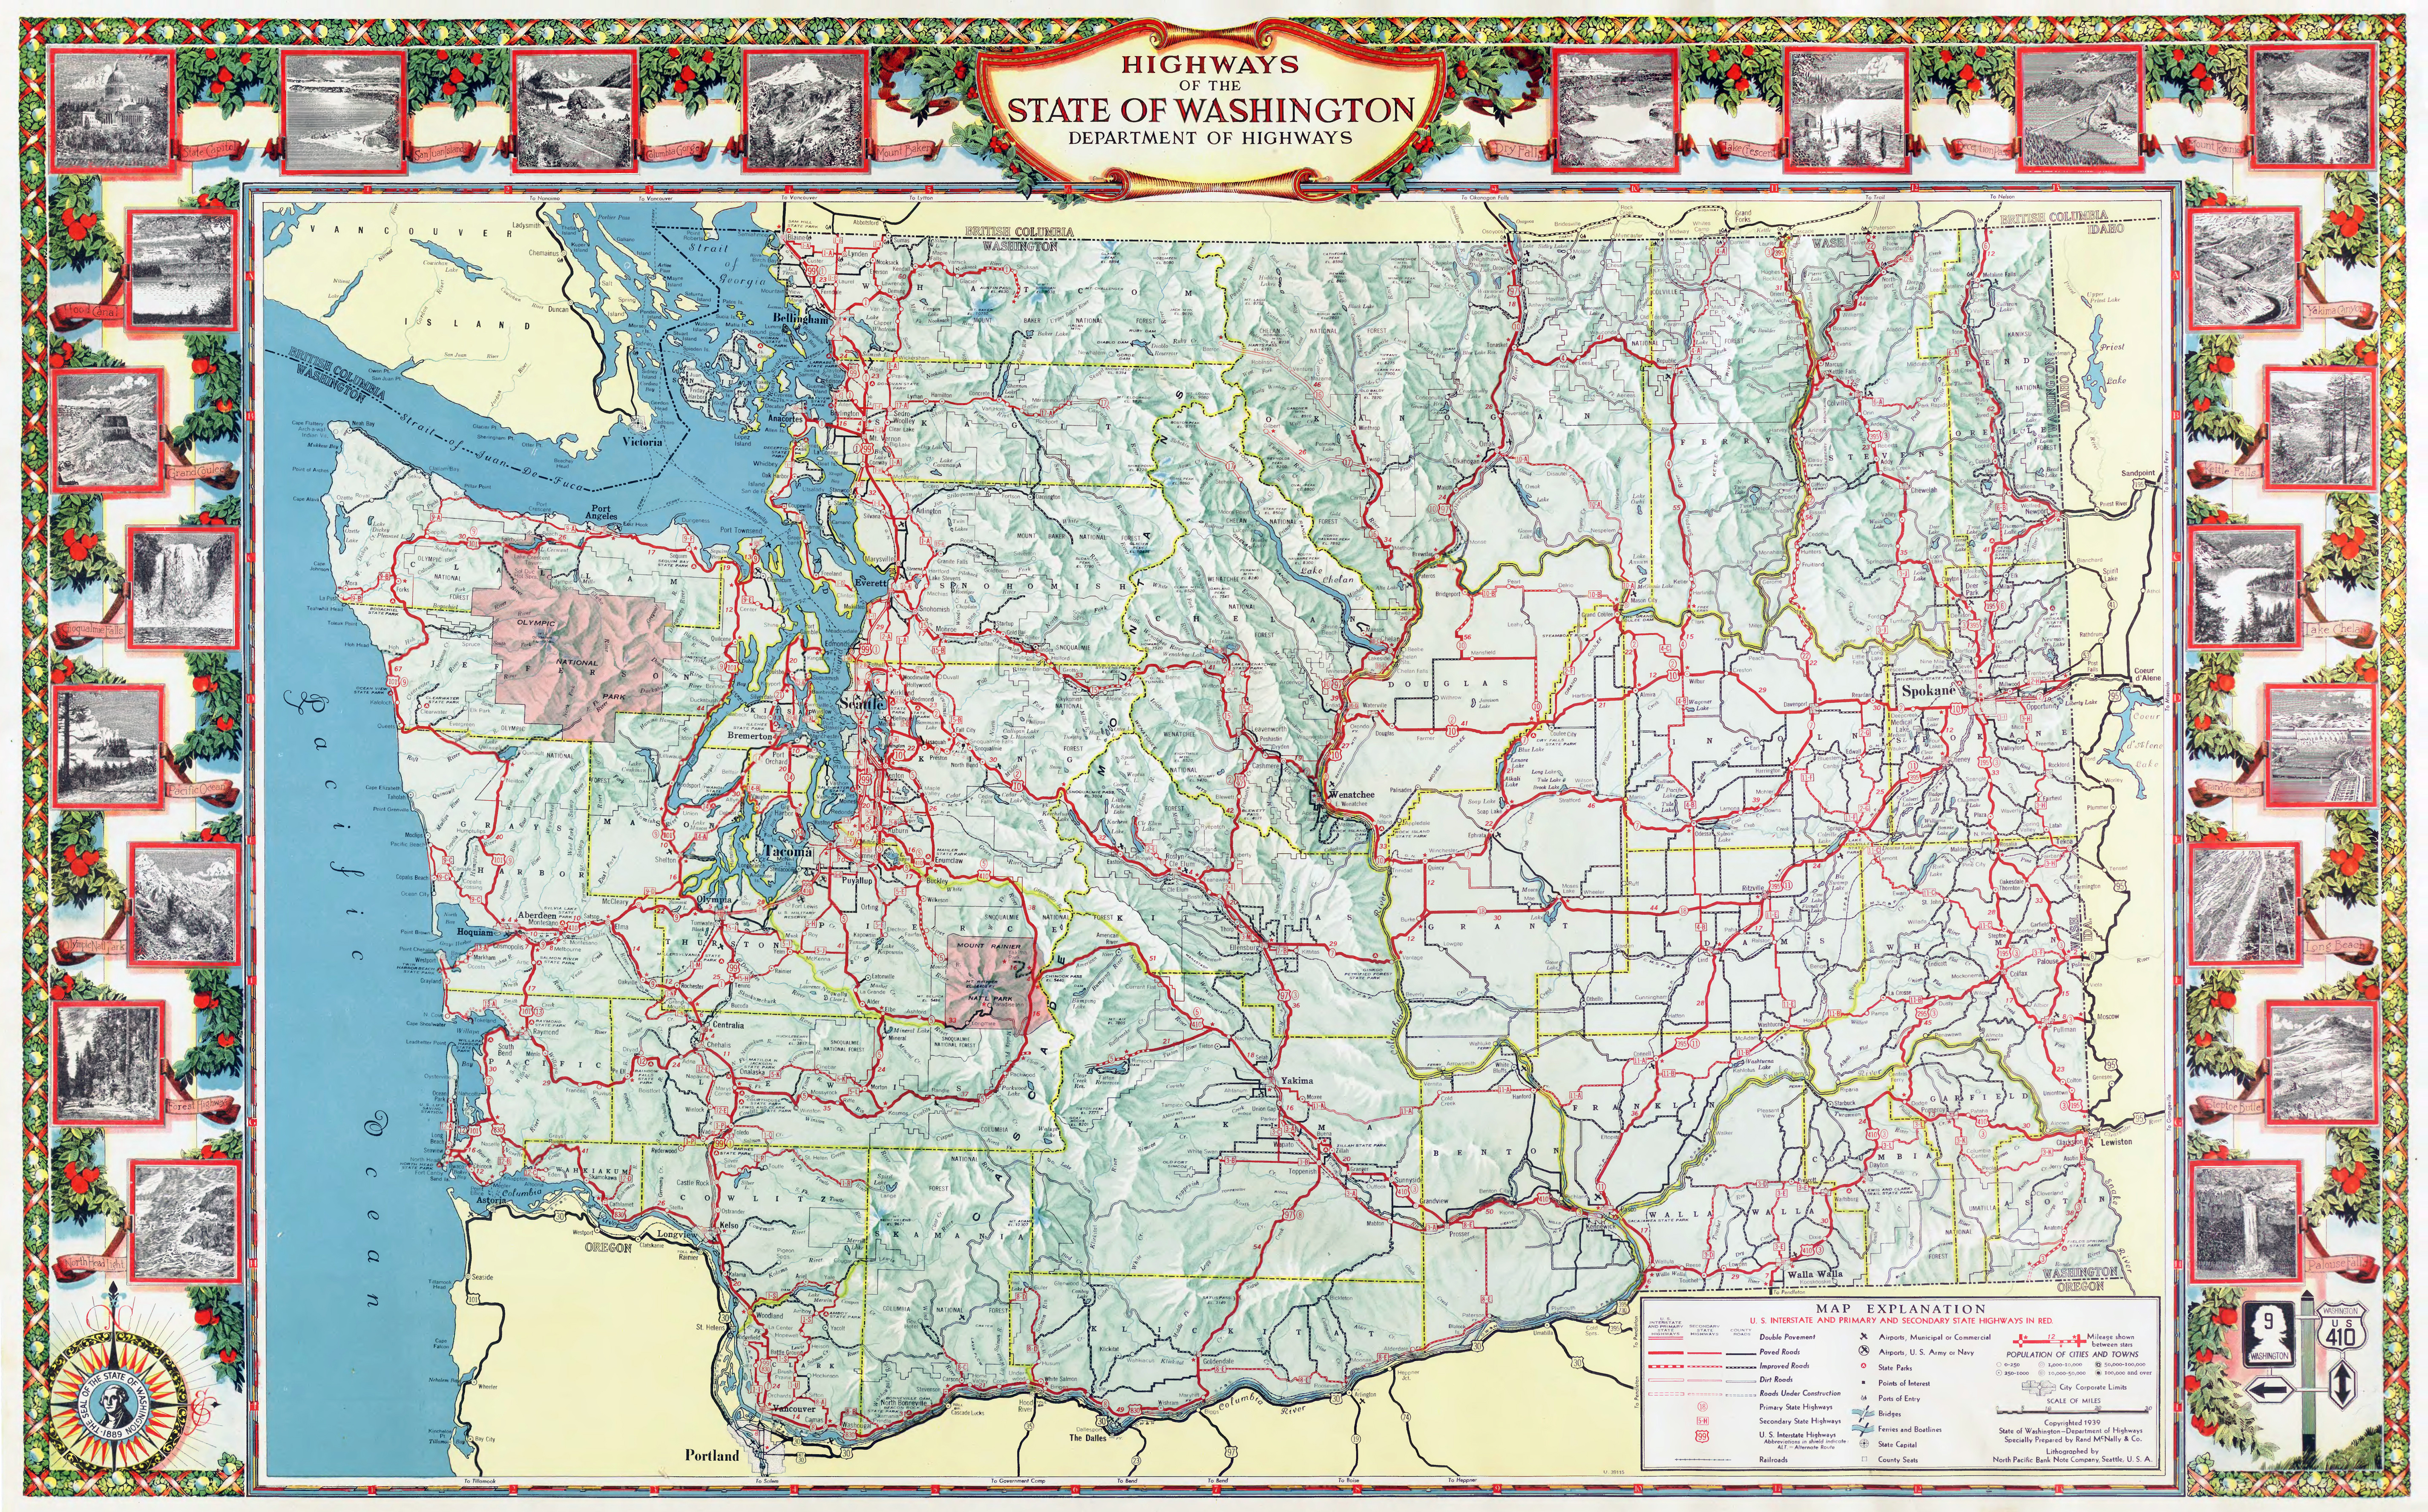 Large Scale Detailed Highway Map Of The State Of Washington With - State of washington map